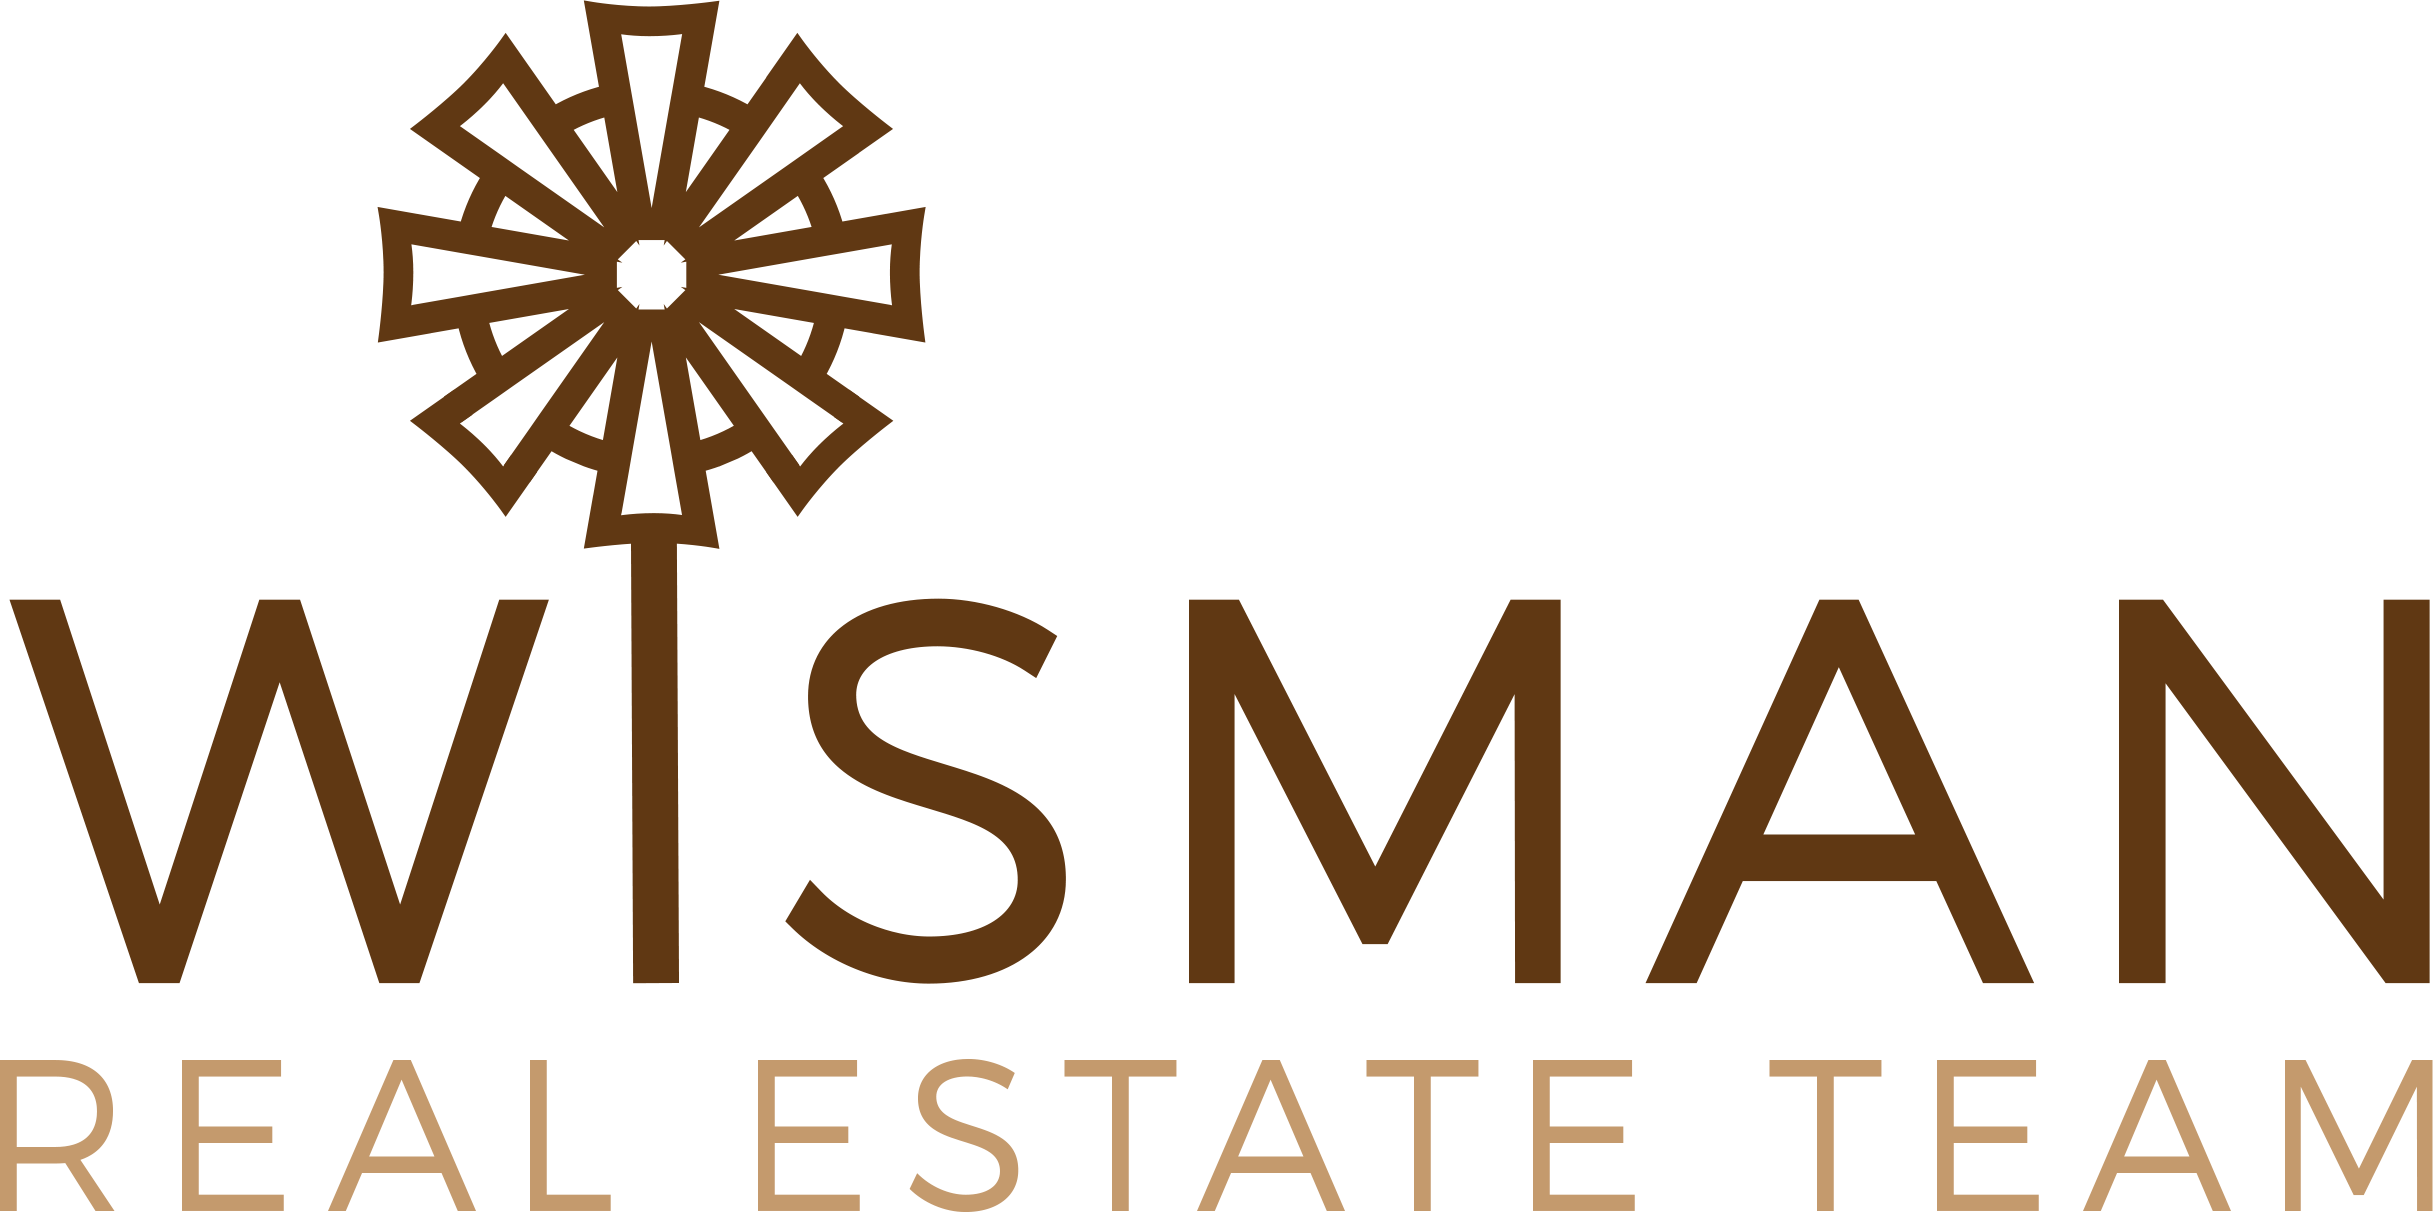 Wisman Real Estate Team - KW South Bay